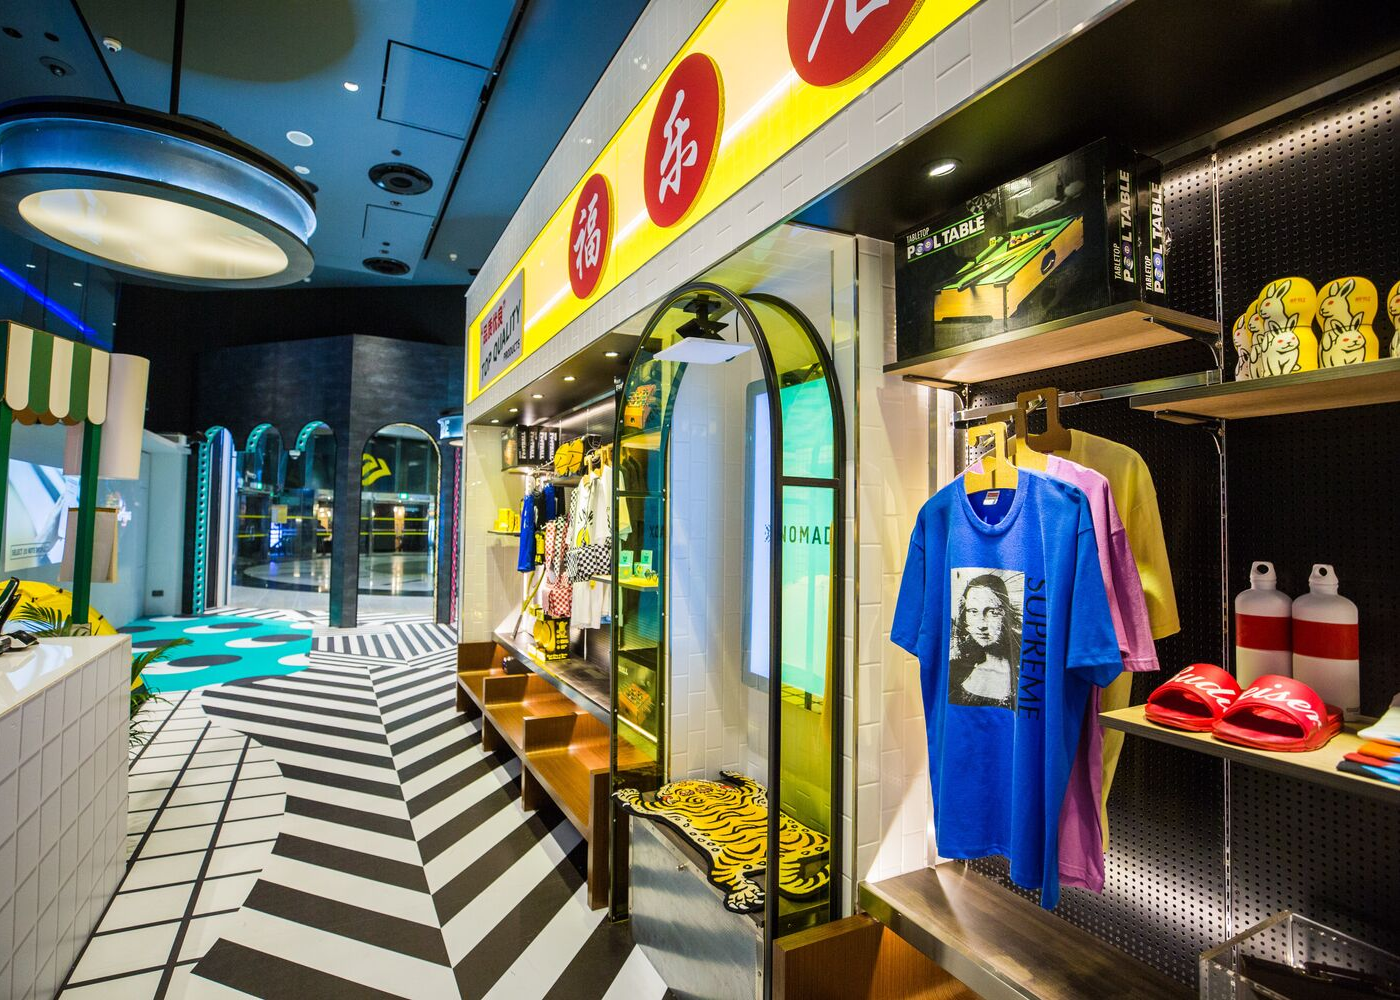 So chic: Shop the coolest brands at these multi-label boutiques in Singapore